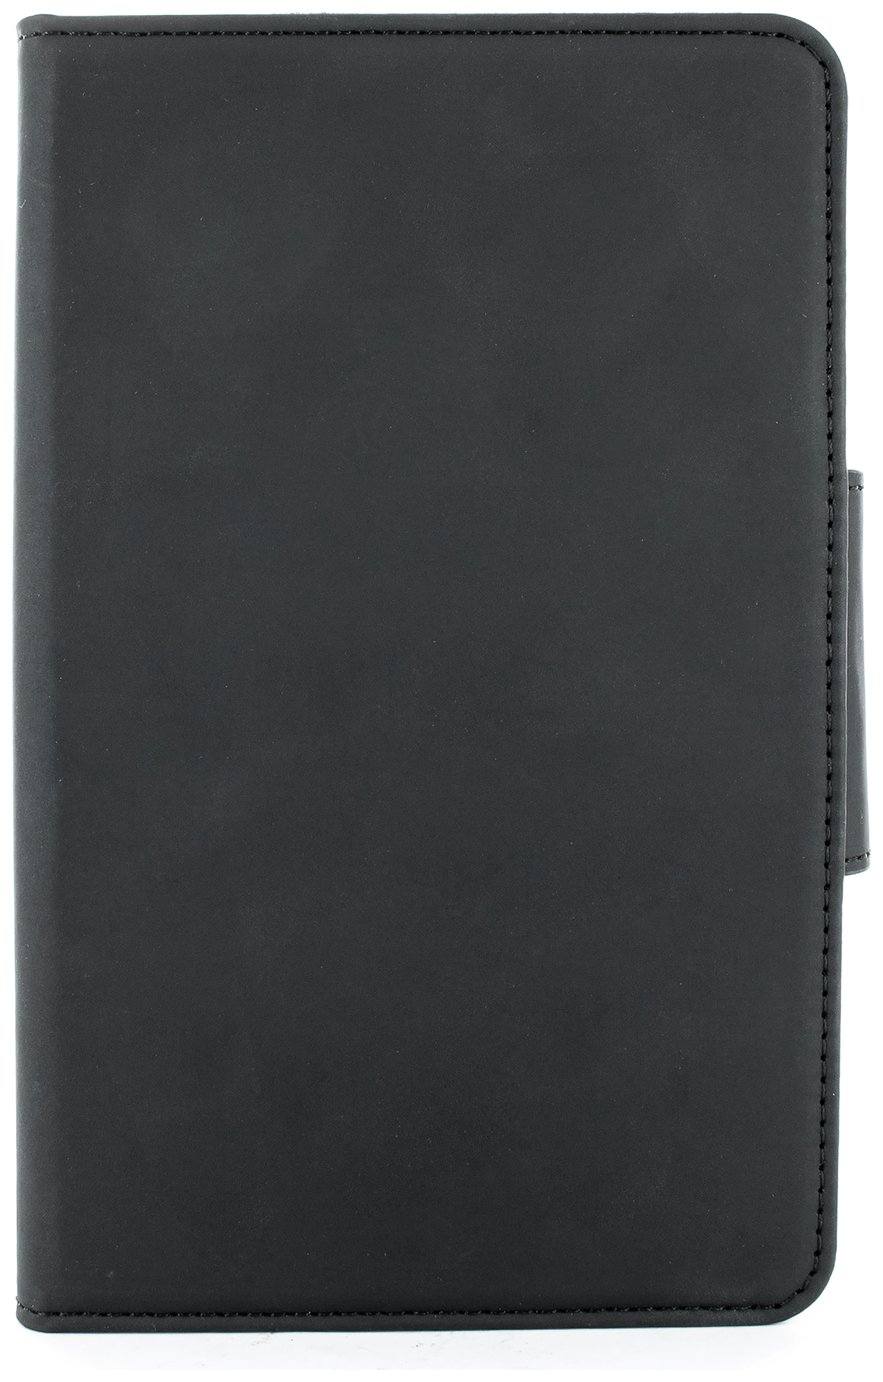 Proporta Samsung Galaxy Tab A 8.0 2018 Tablet Cover - Black